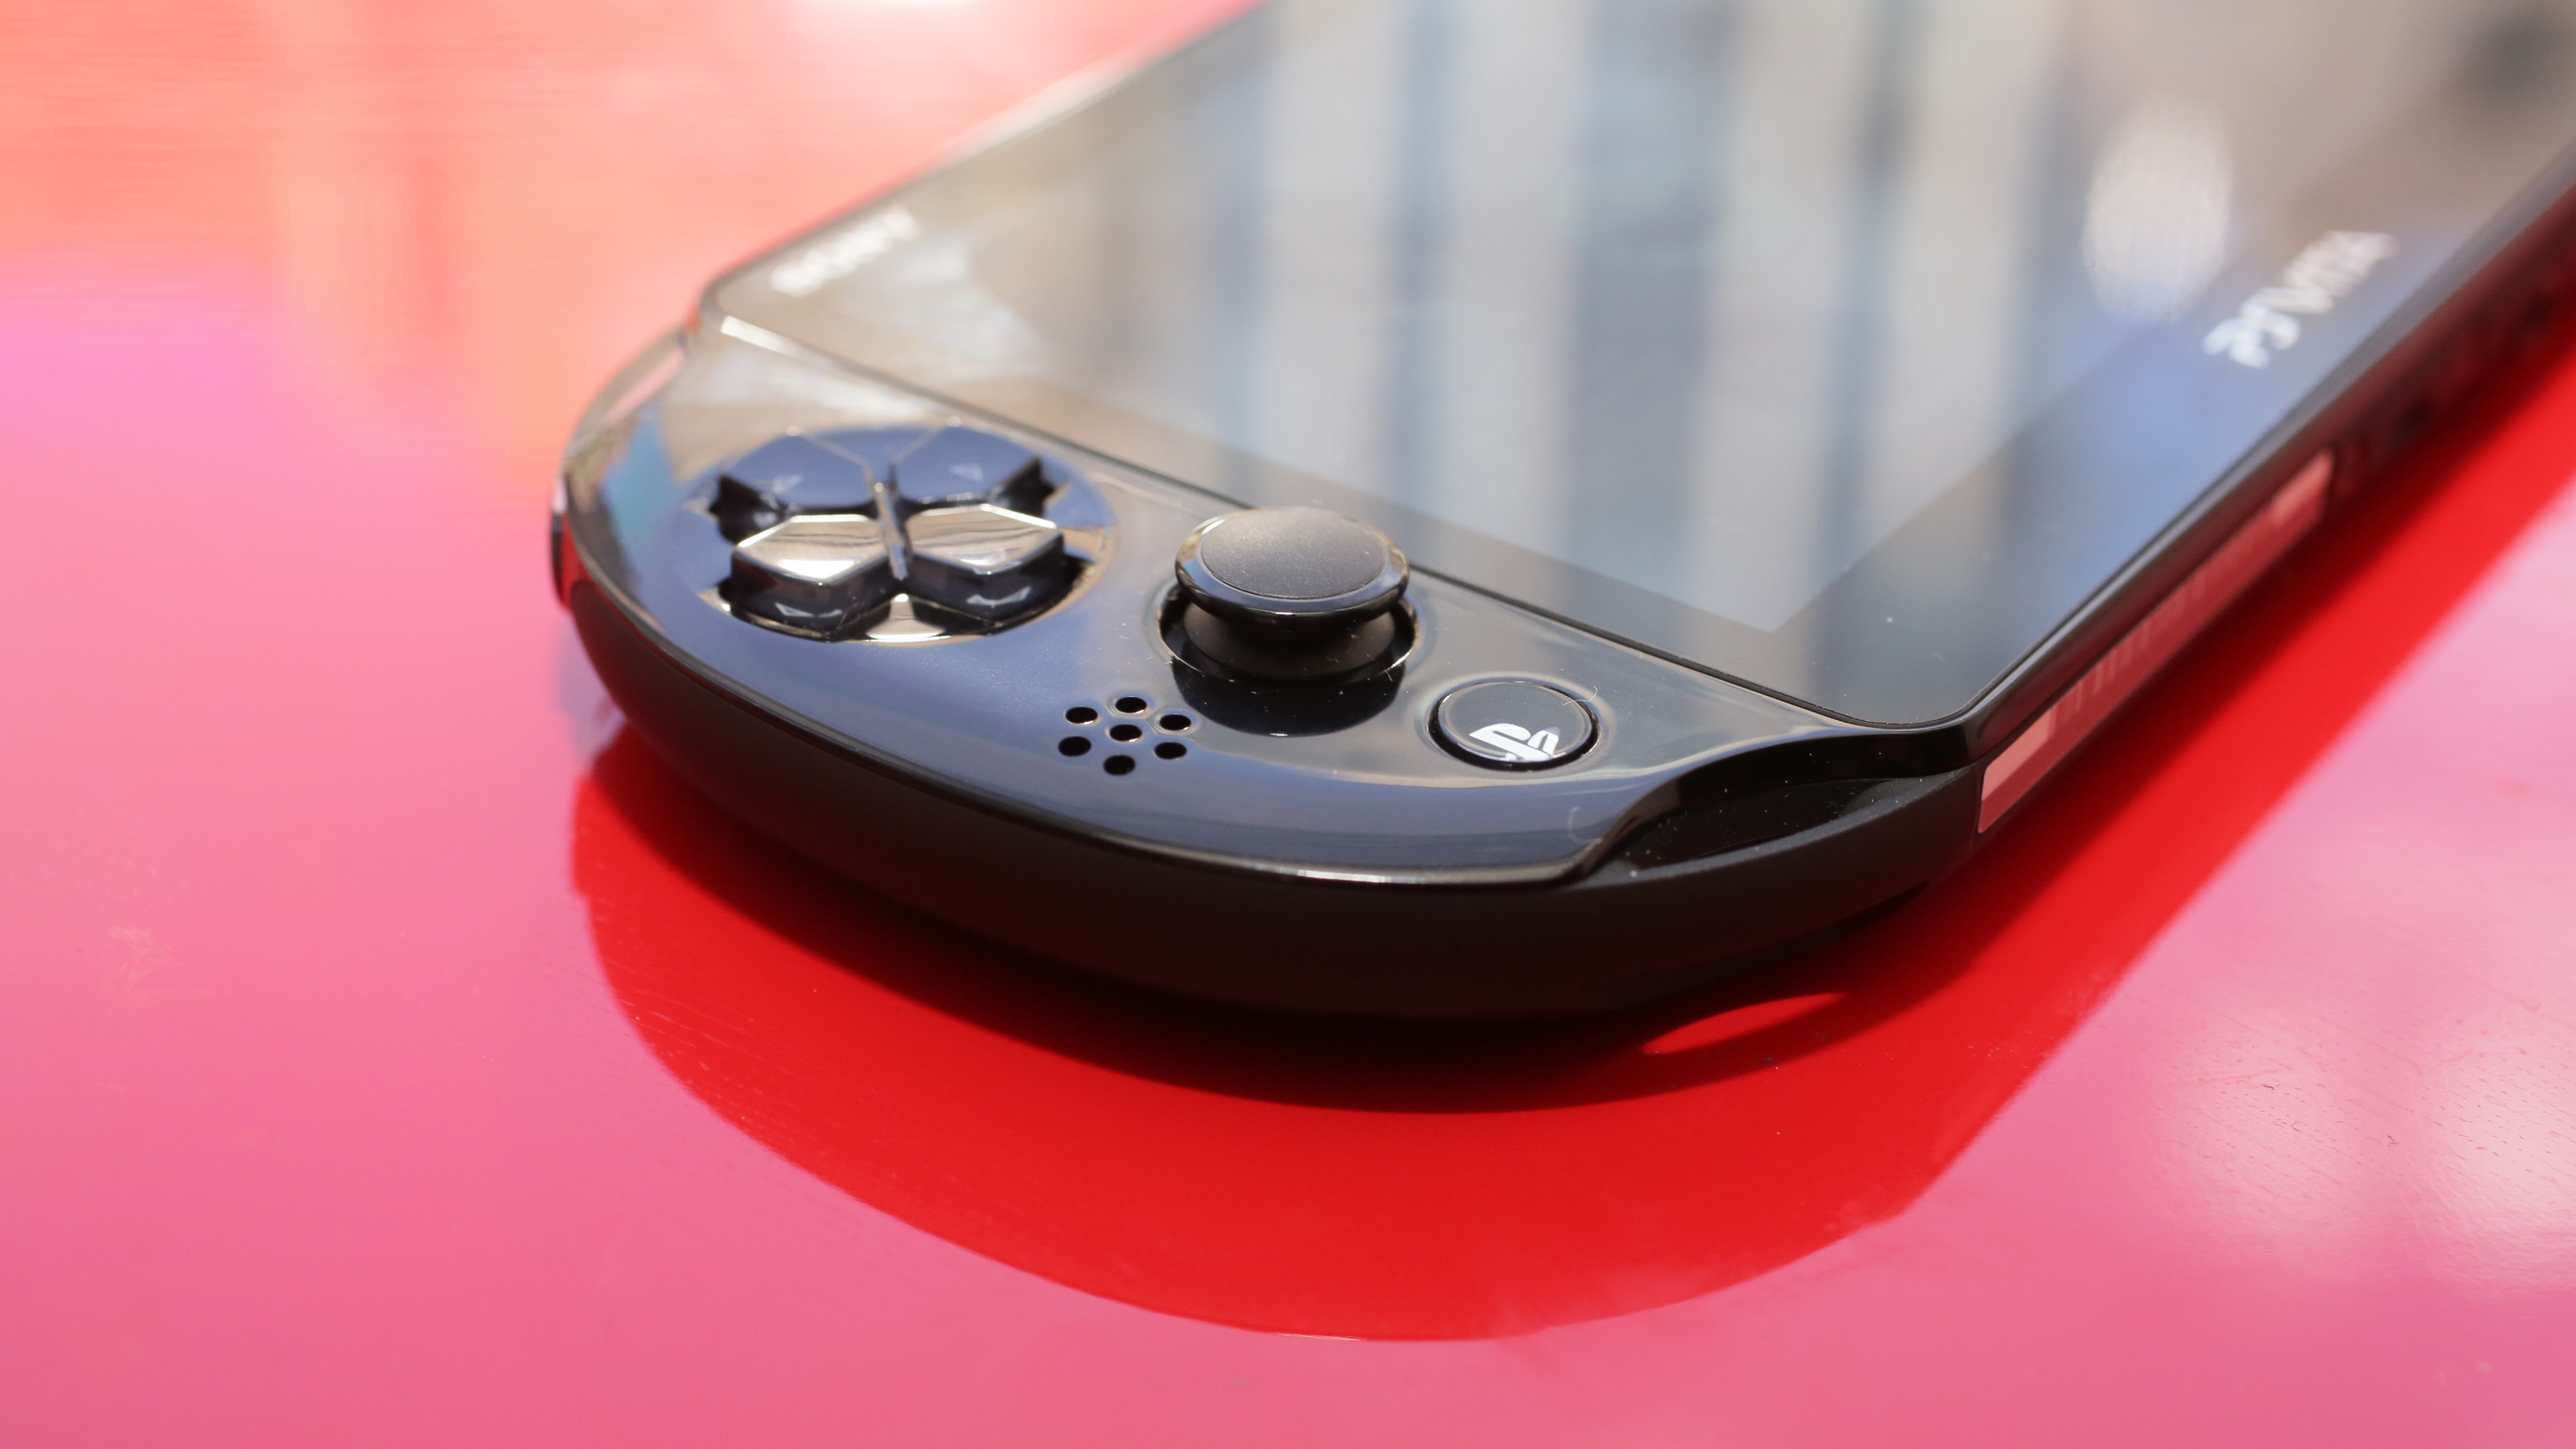 playstation-vita-slim-product-photos05.jpg